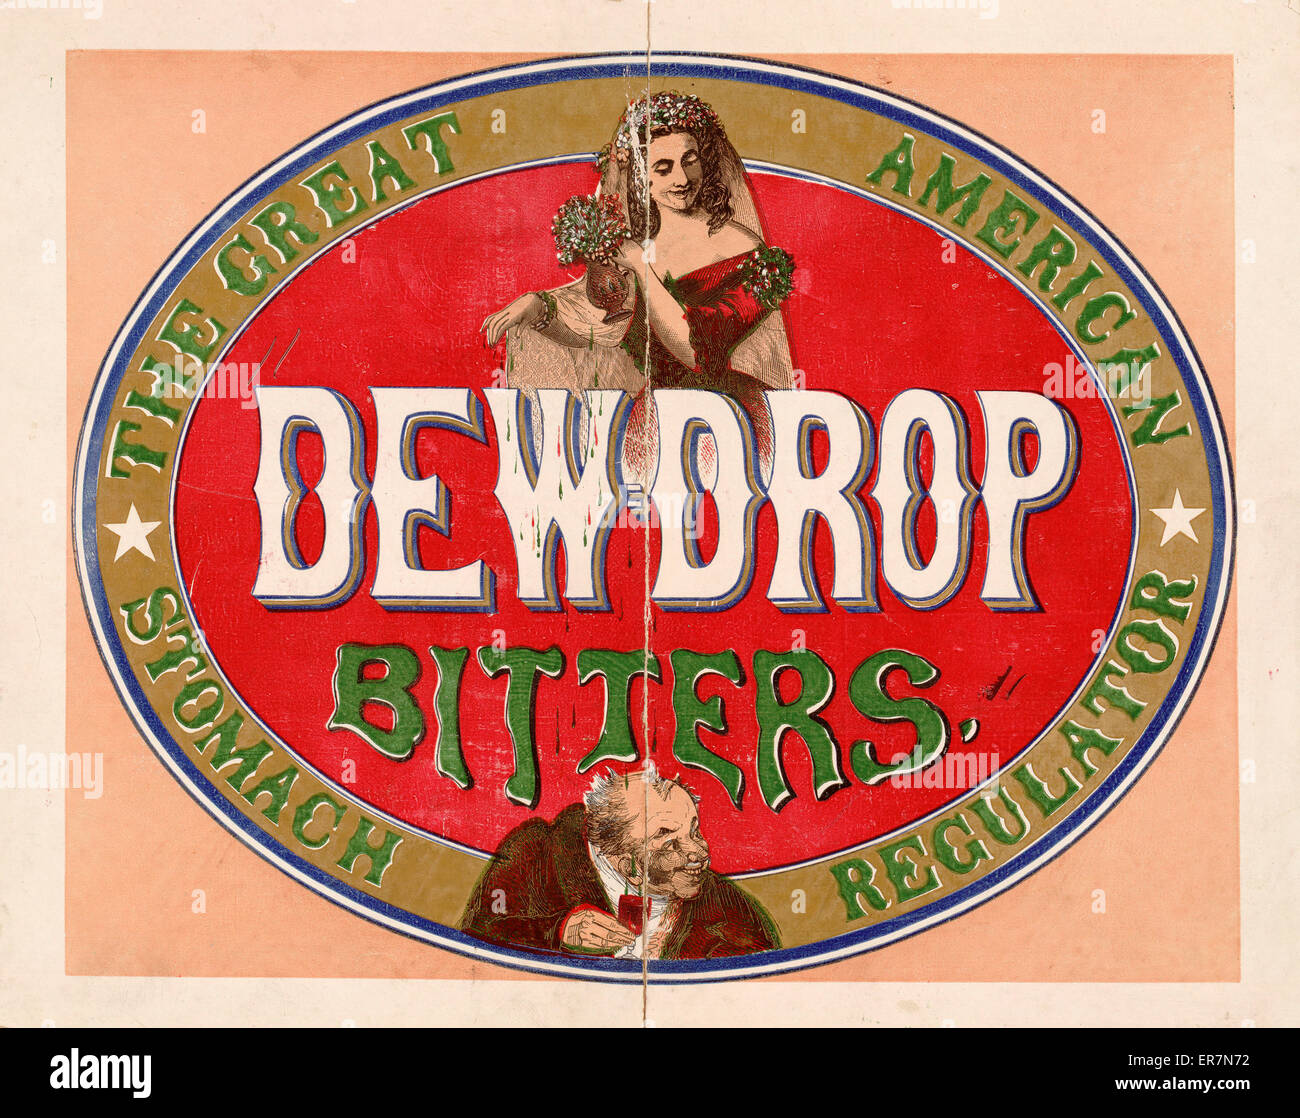 Dewdrop bitters - the great American stomach regulator. Print of a patent medicine advertisement showing a woman, - Stock Image